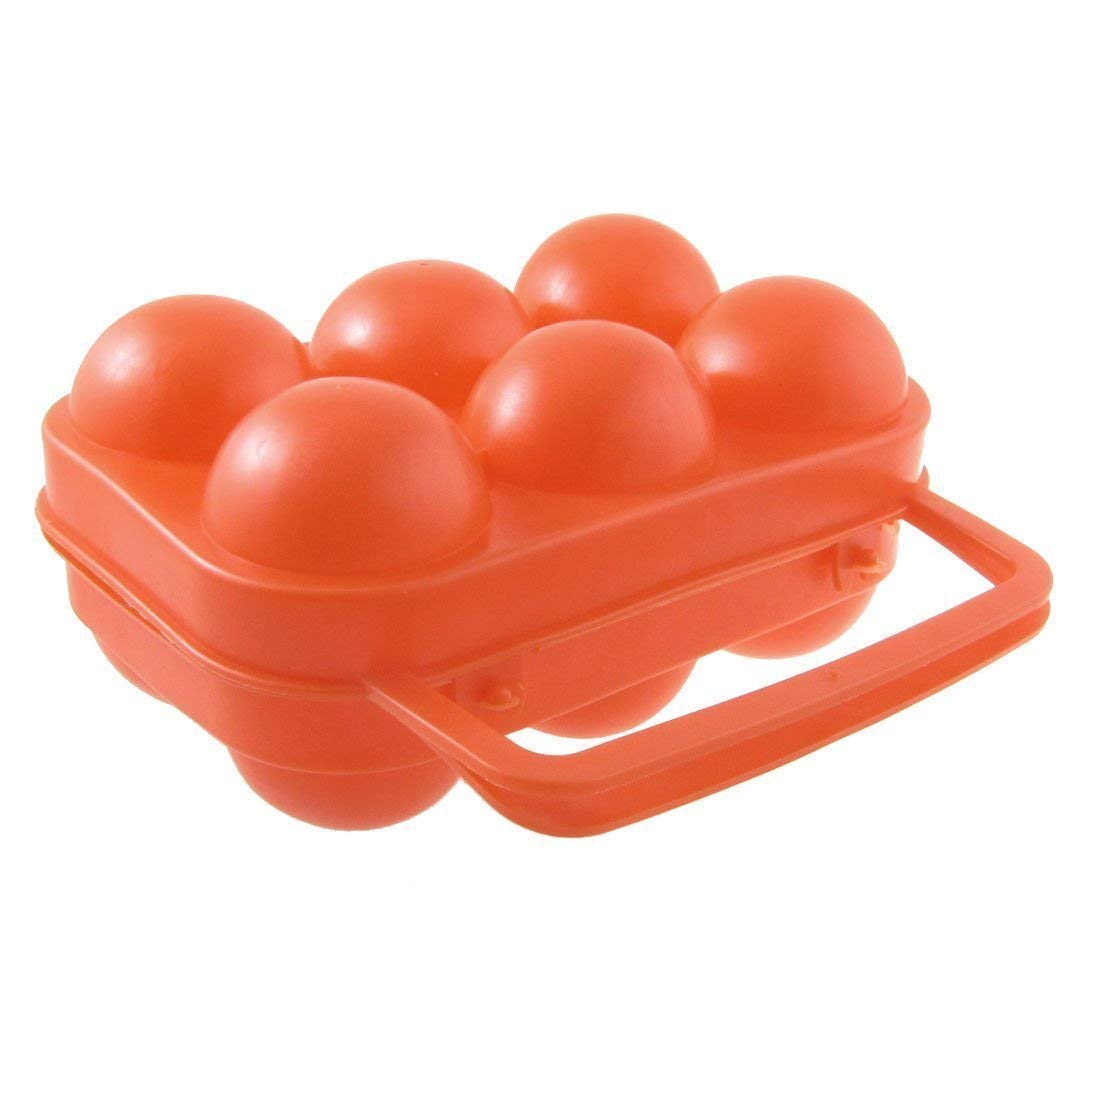 TOOGOO(R) Outdoor Camping Orange Red Folding Plastic Egg Tray Box Case